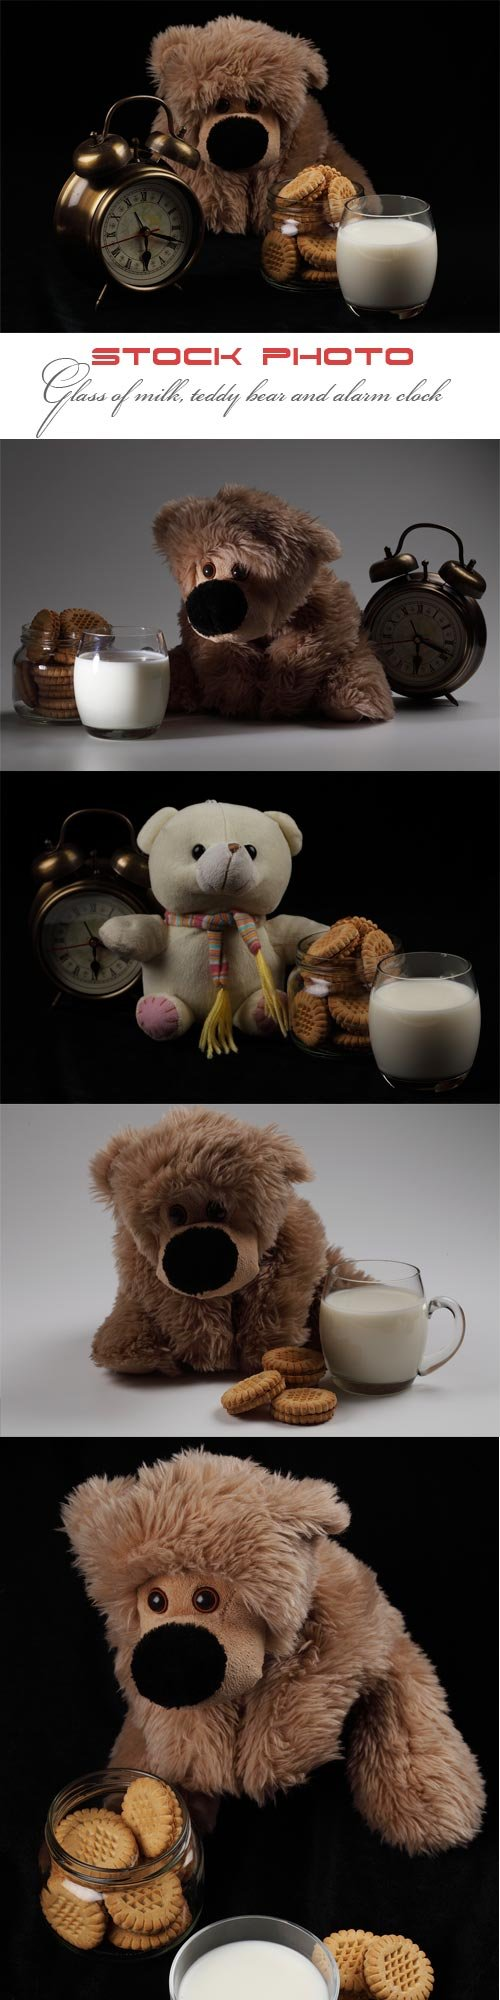 Glass of milk, teddy bear and alarm clock